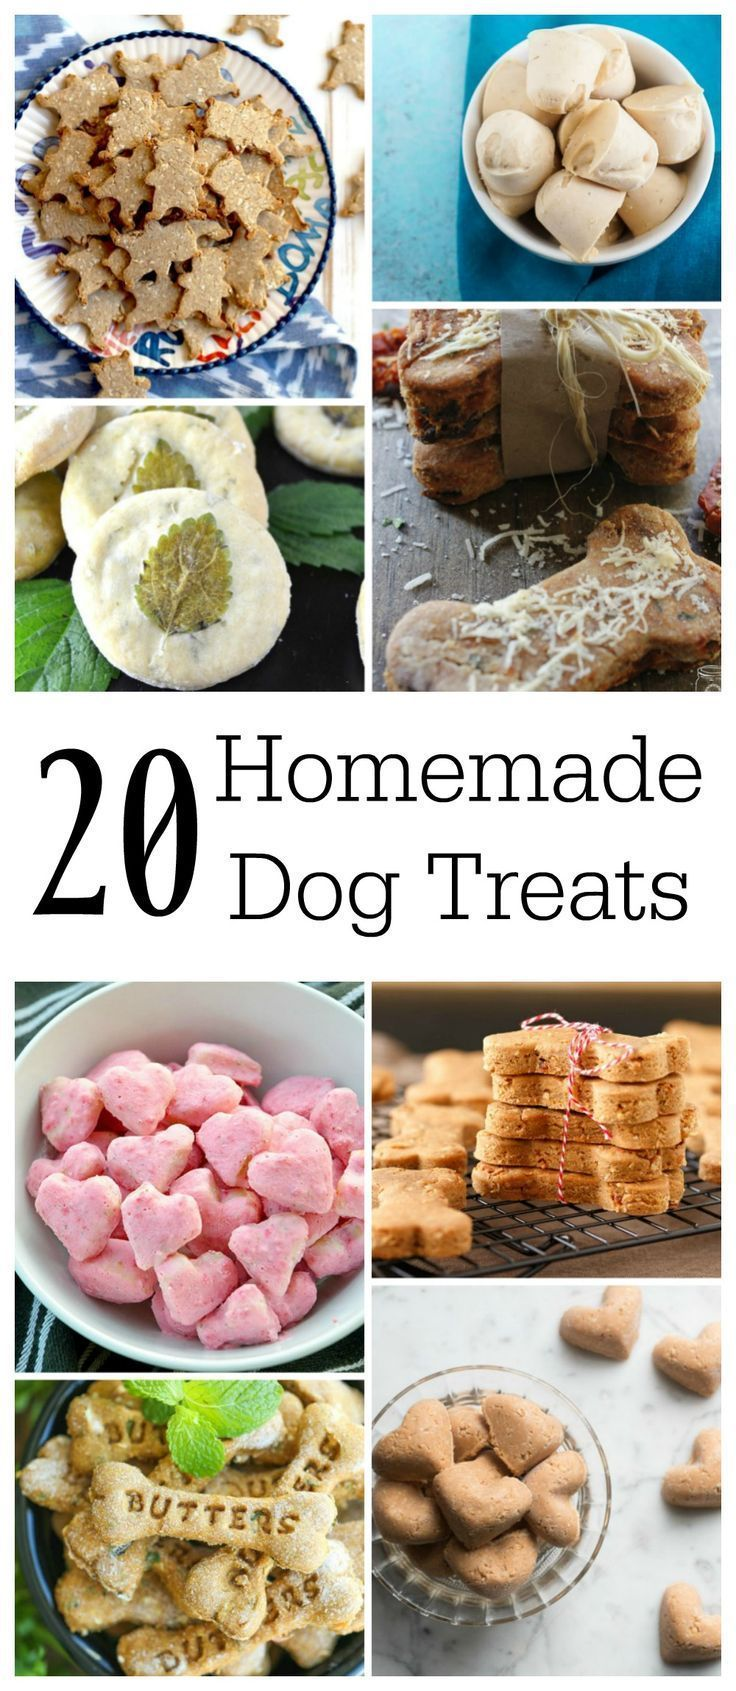 20 Homade Dog Food Recipes 20 homemade dog treats   endlessly inspired in 2020   dog